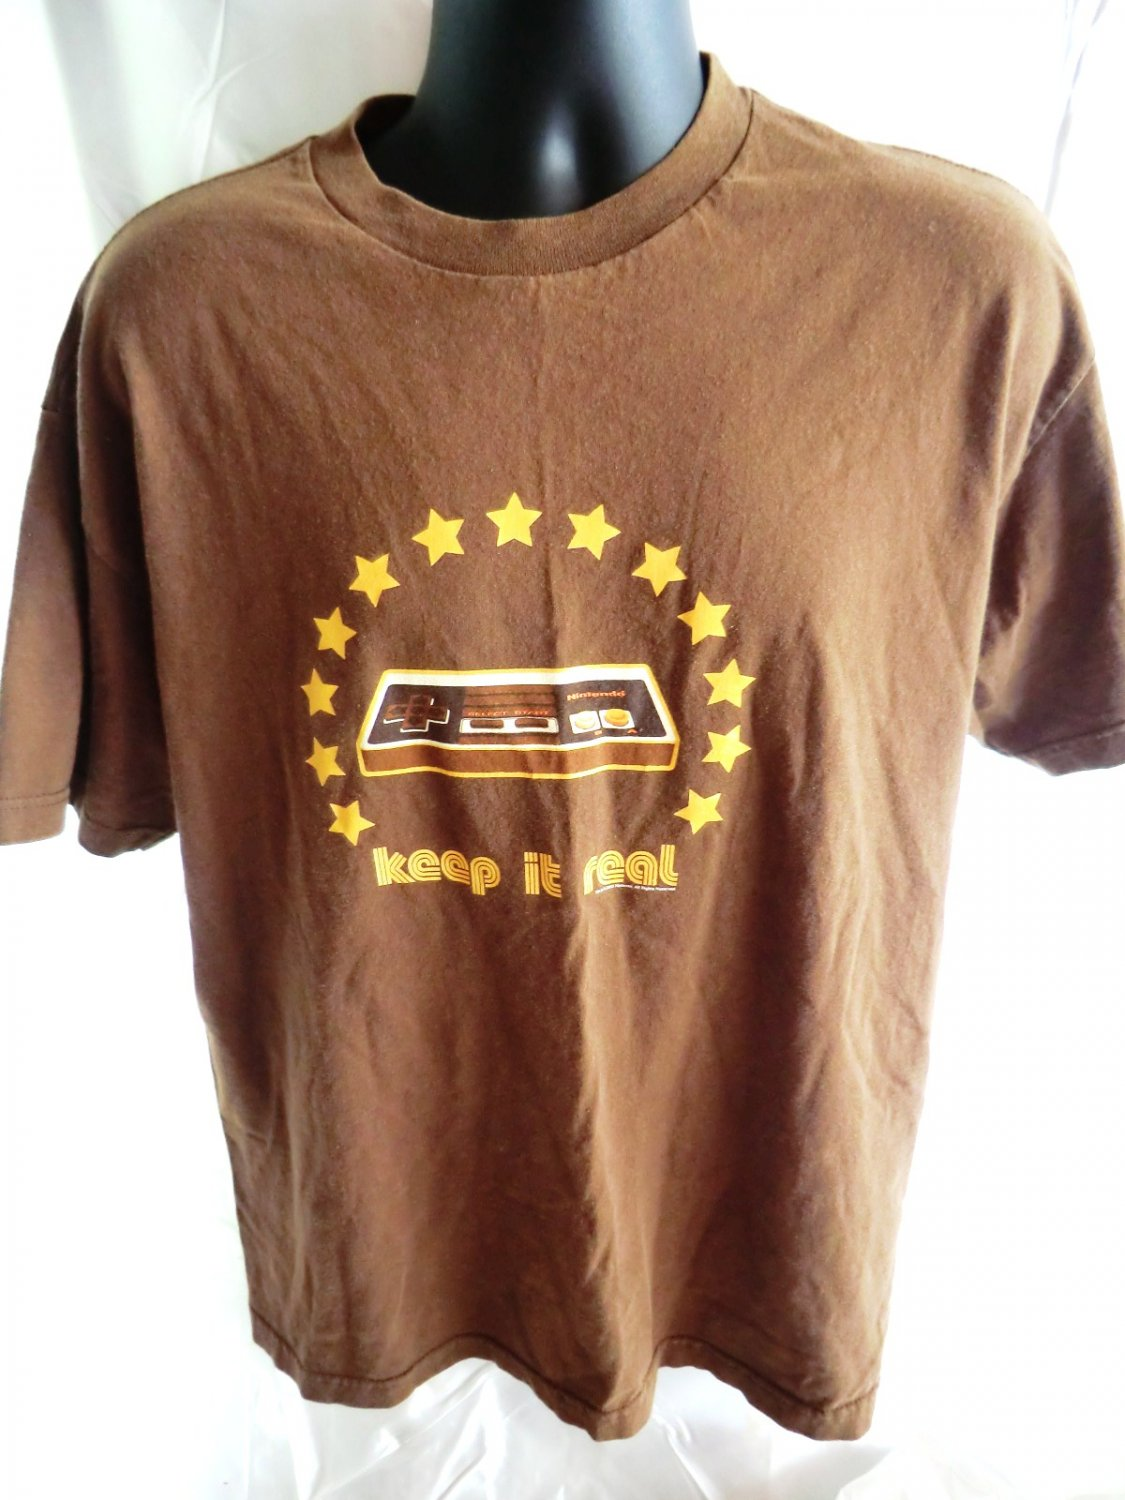 SOLD! Rare Nintendo T-Shirt 2003 Keep It Real Old School Size Large / XL